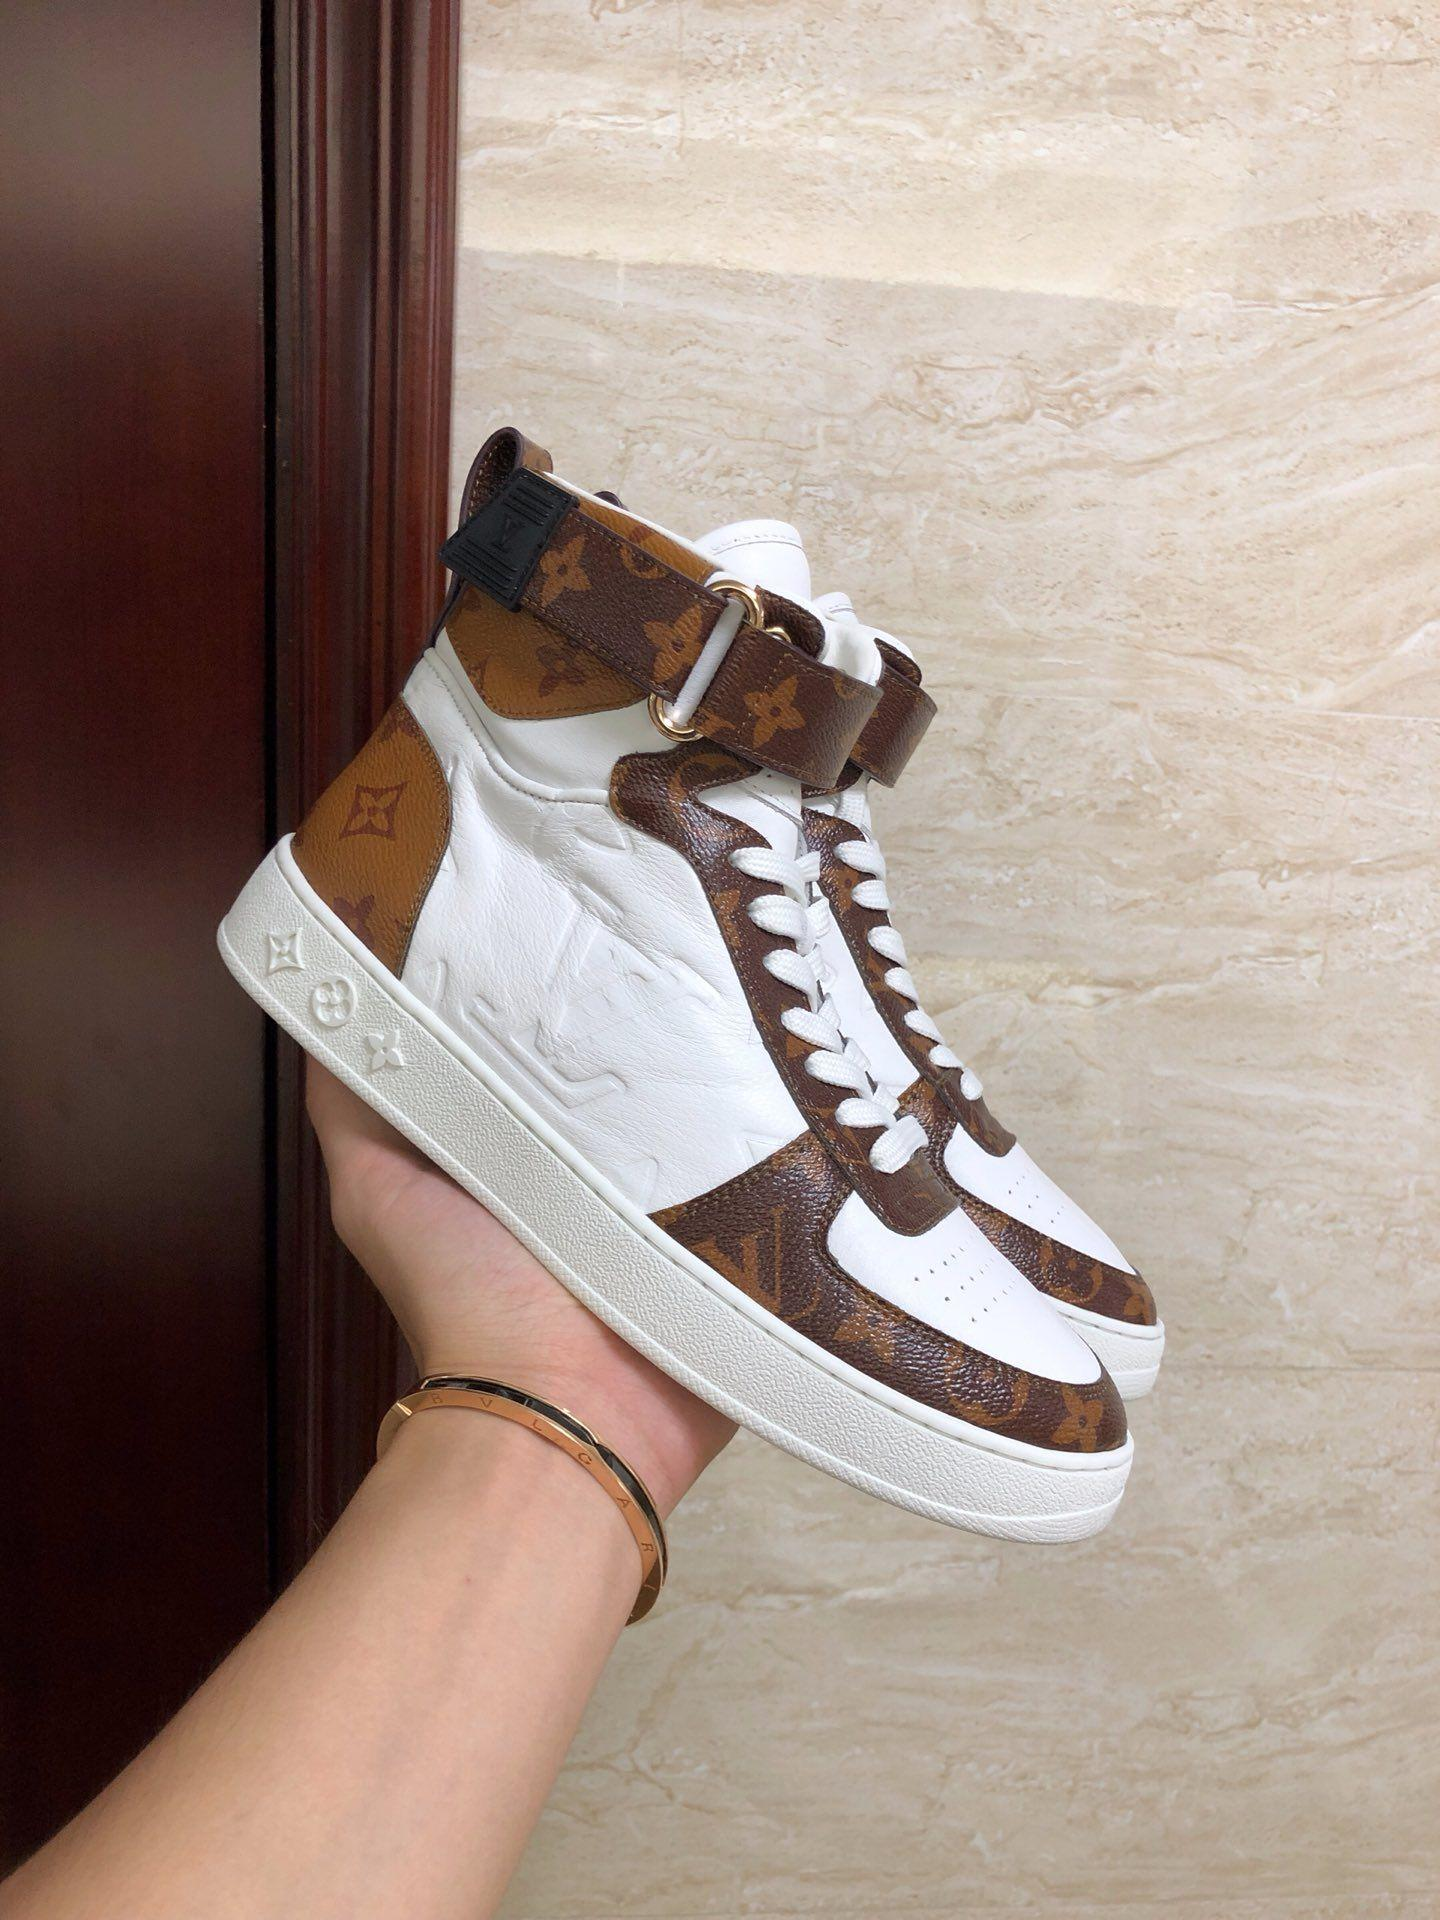 boombox sneaker boot    women sneaker 1A5MWJ Embossed lamb leather  White  4